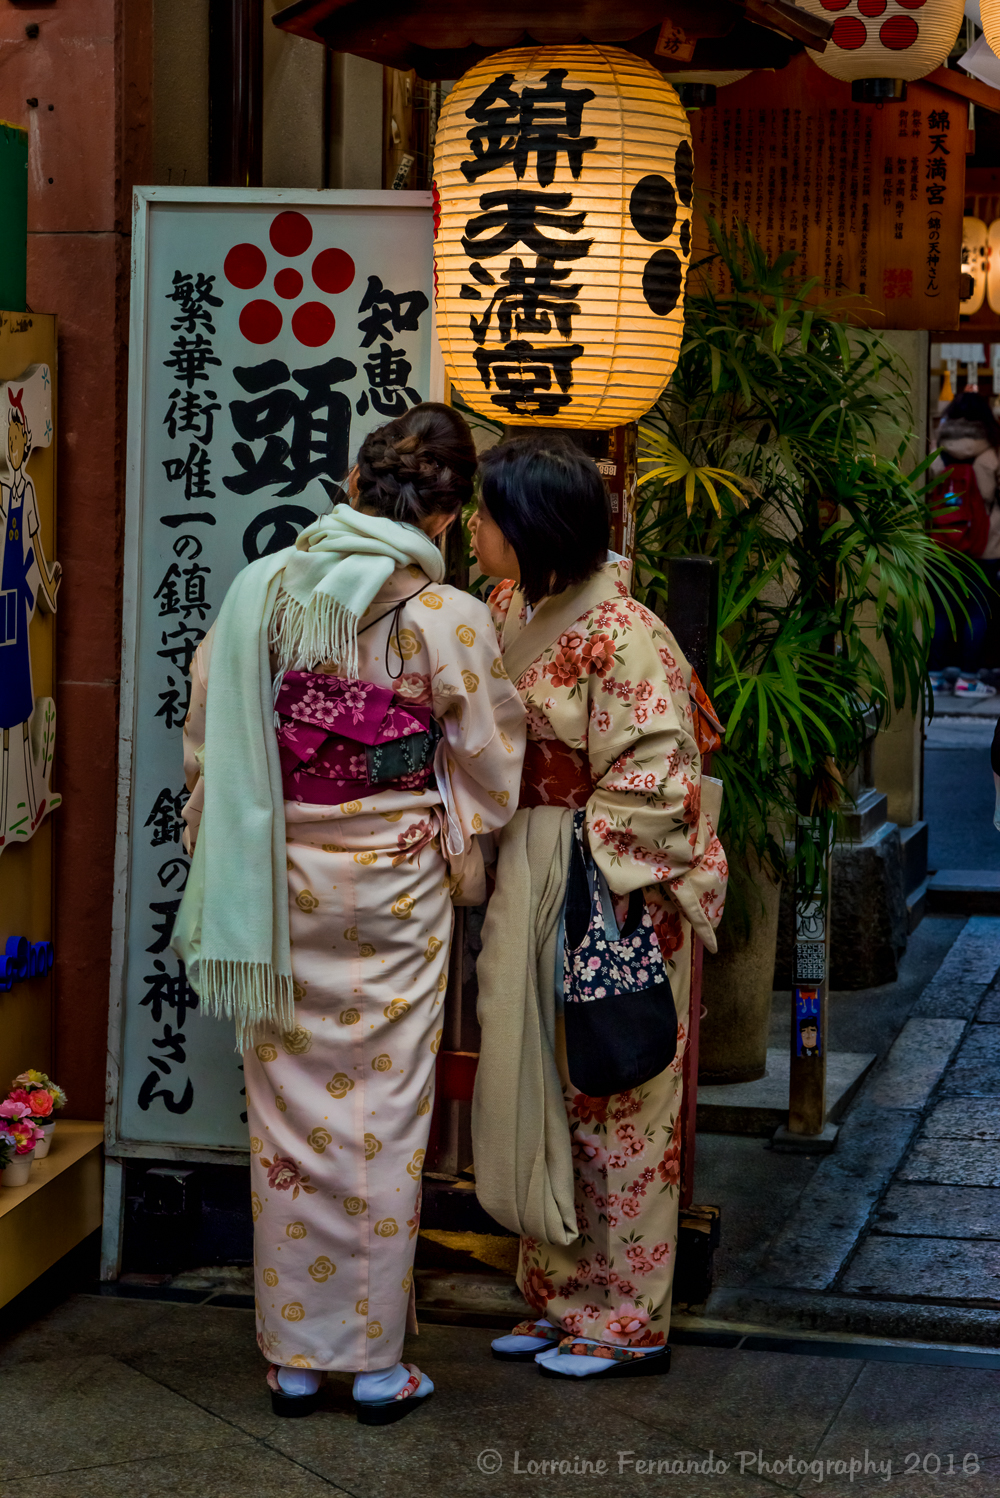 Kyoto - On the street